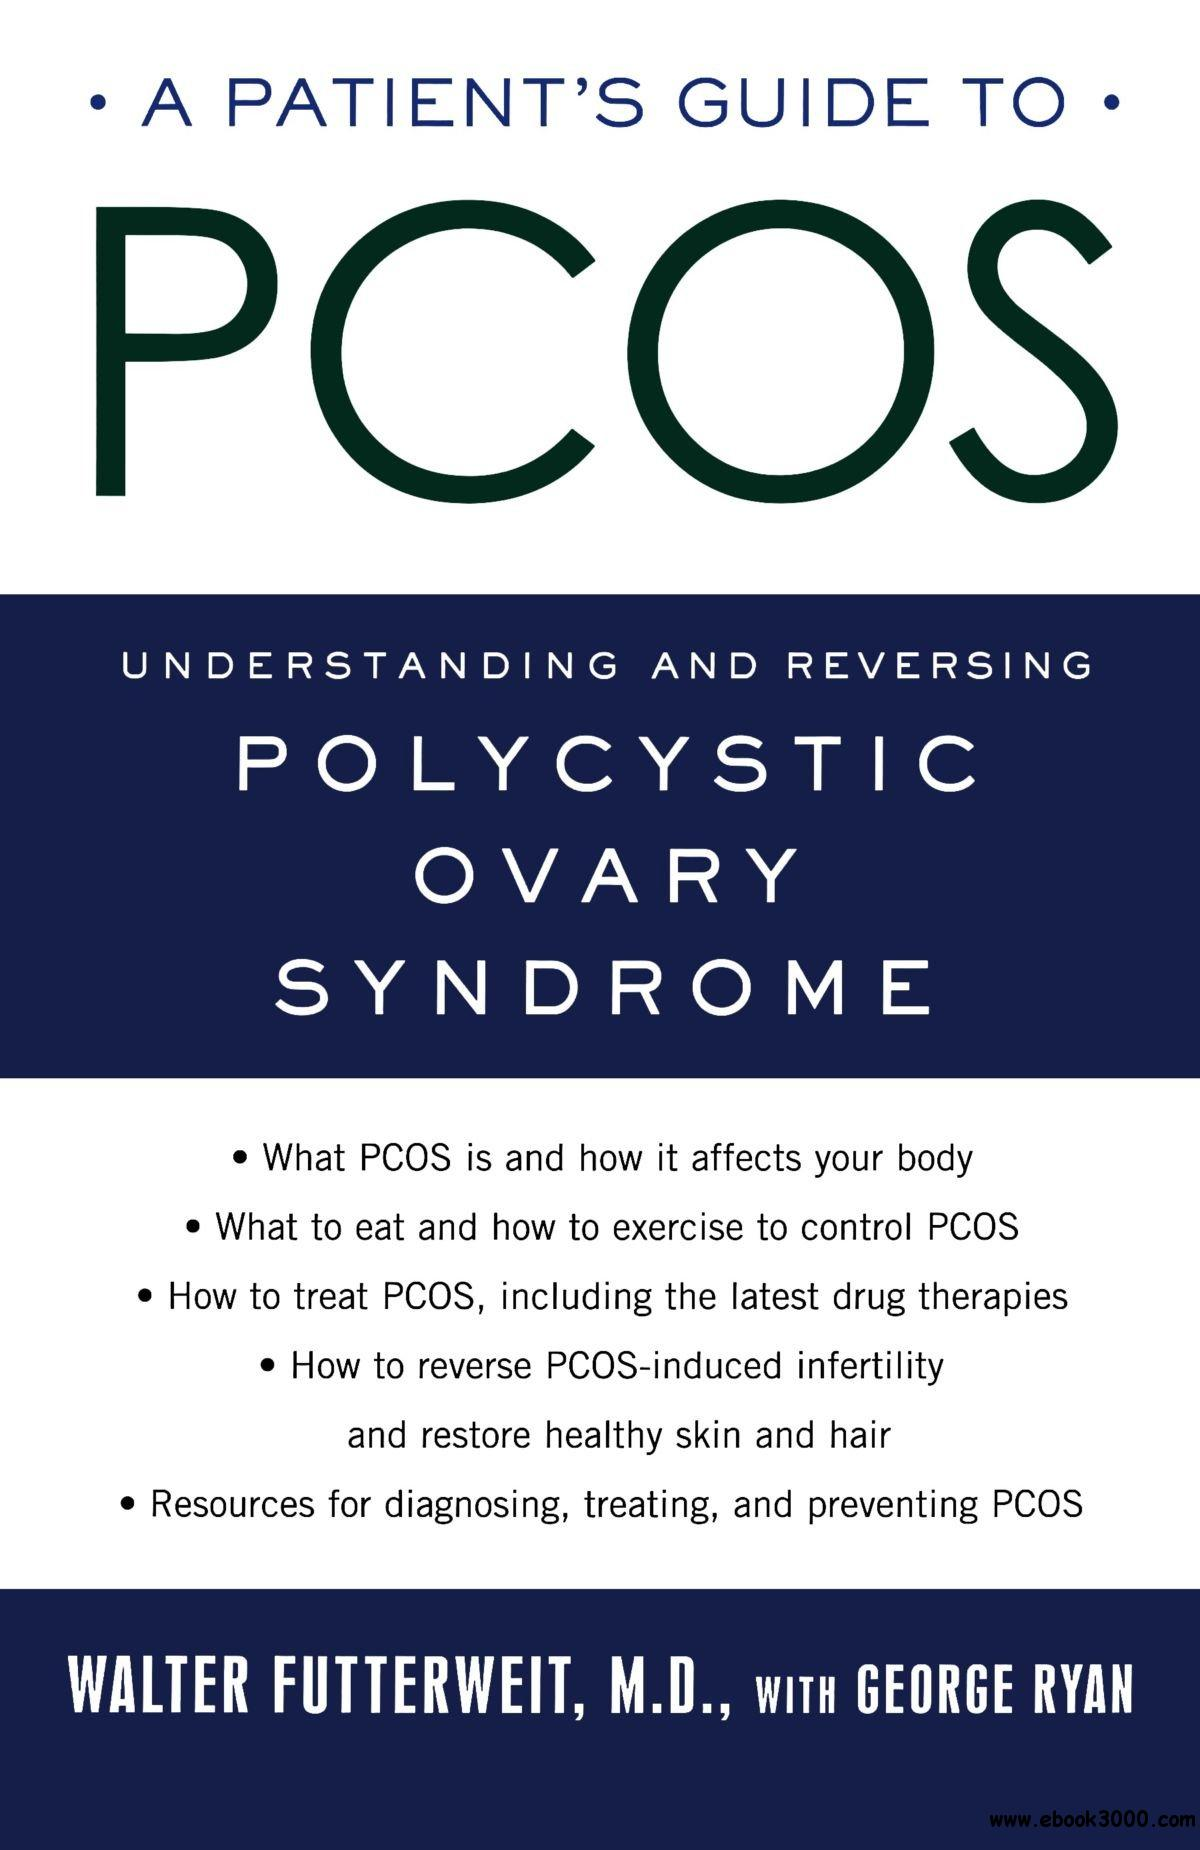 A Patient's Guide to PCOS: Understanding: and Reversing--Polycystic Ovary Syndrome